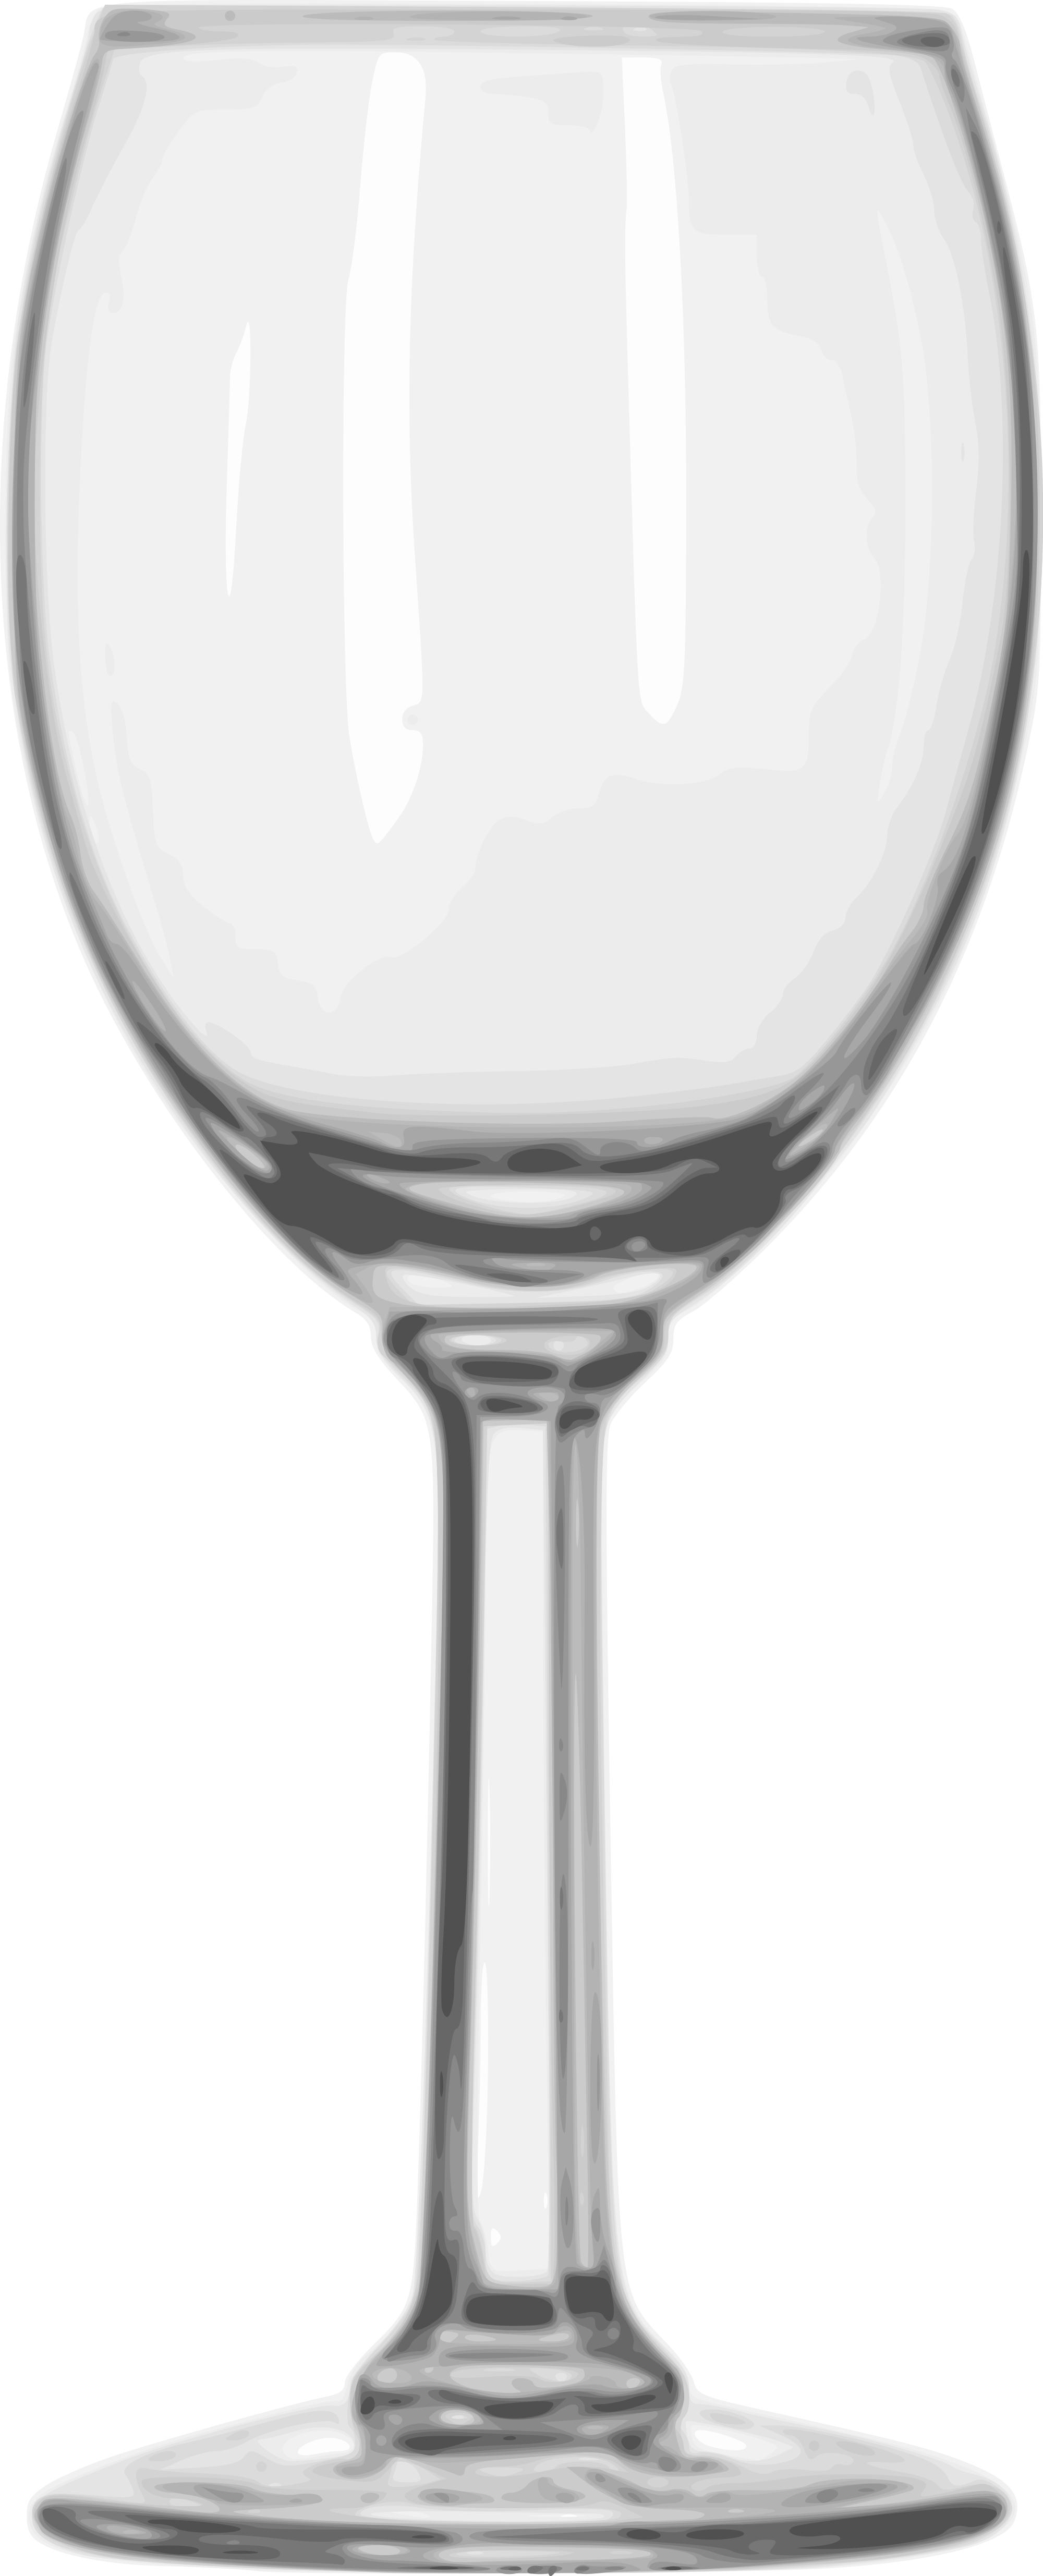 Black And White Wine Glass Png & Free Black And White Wine ...